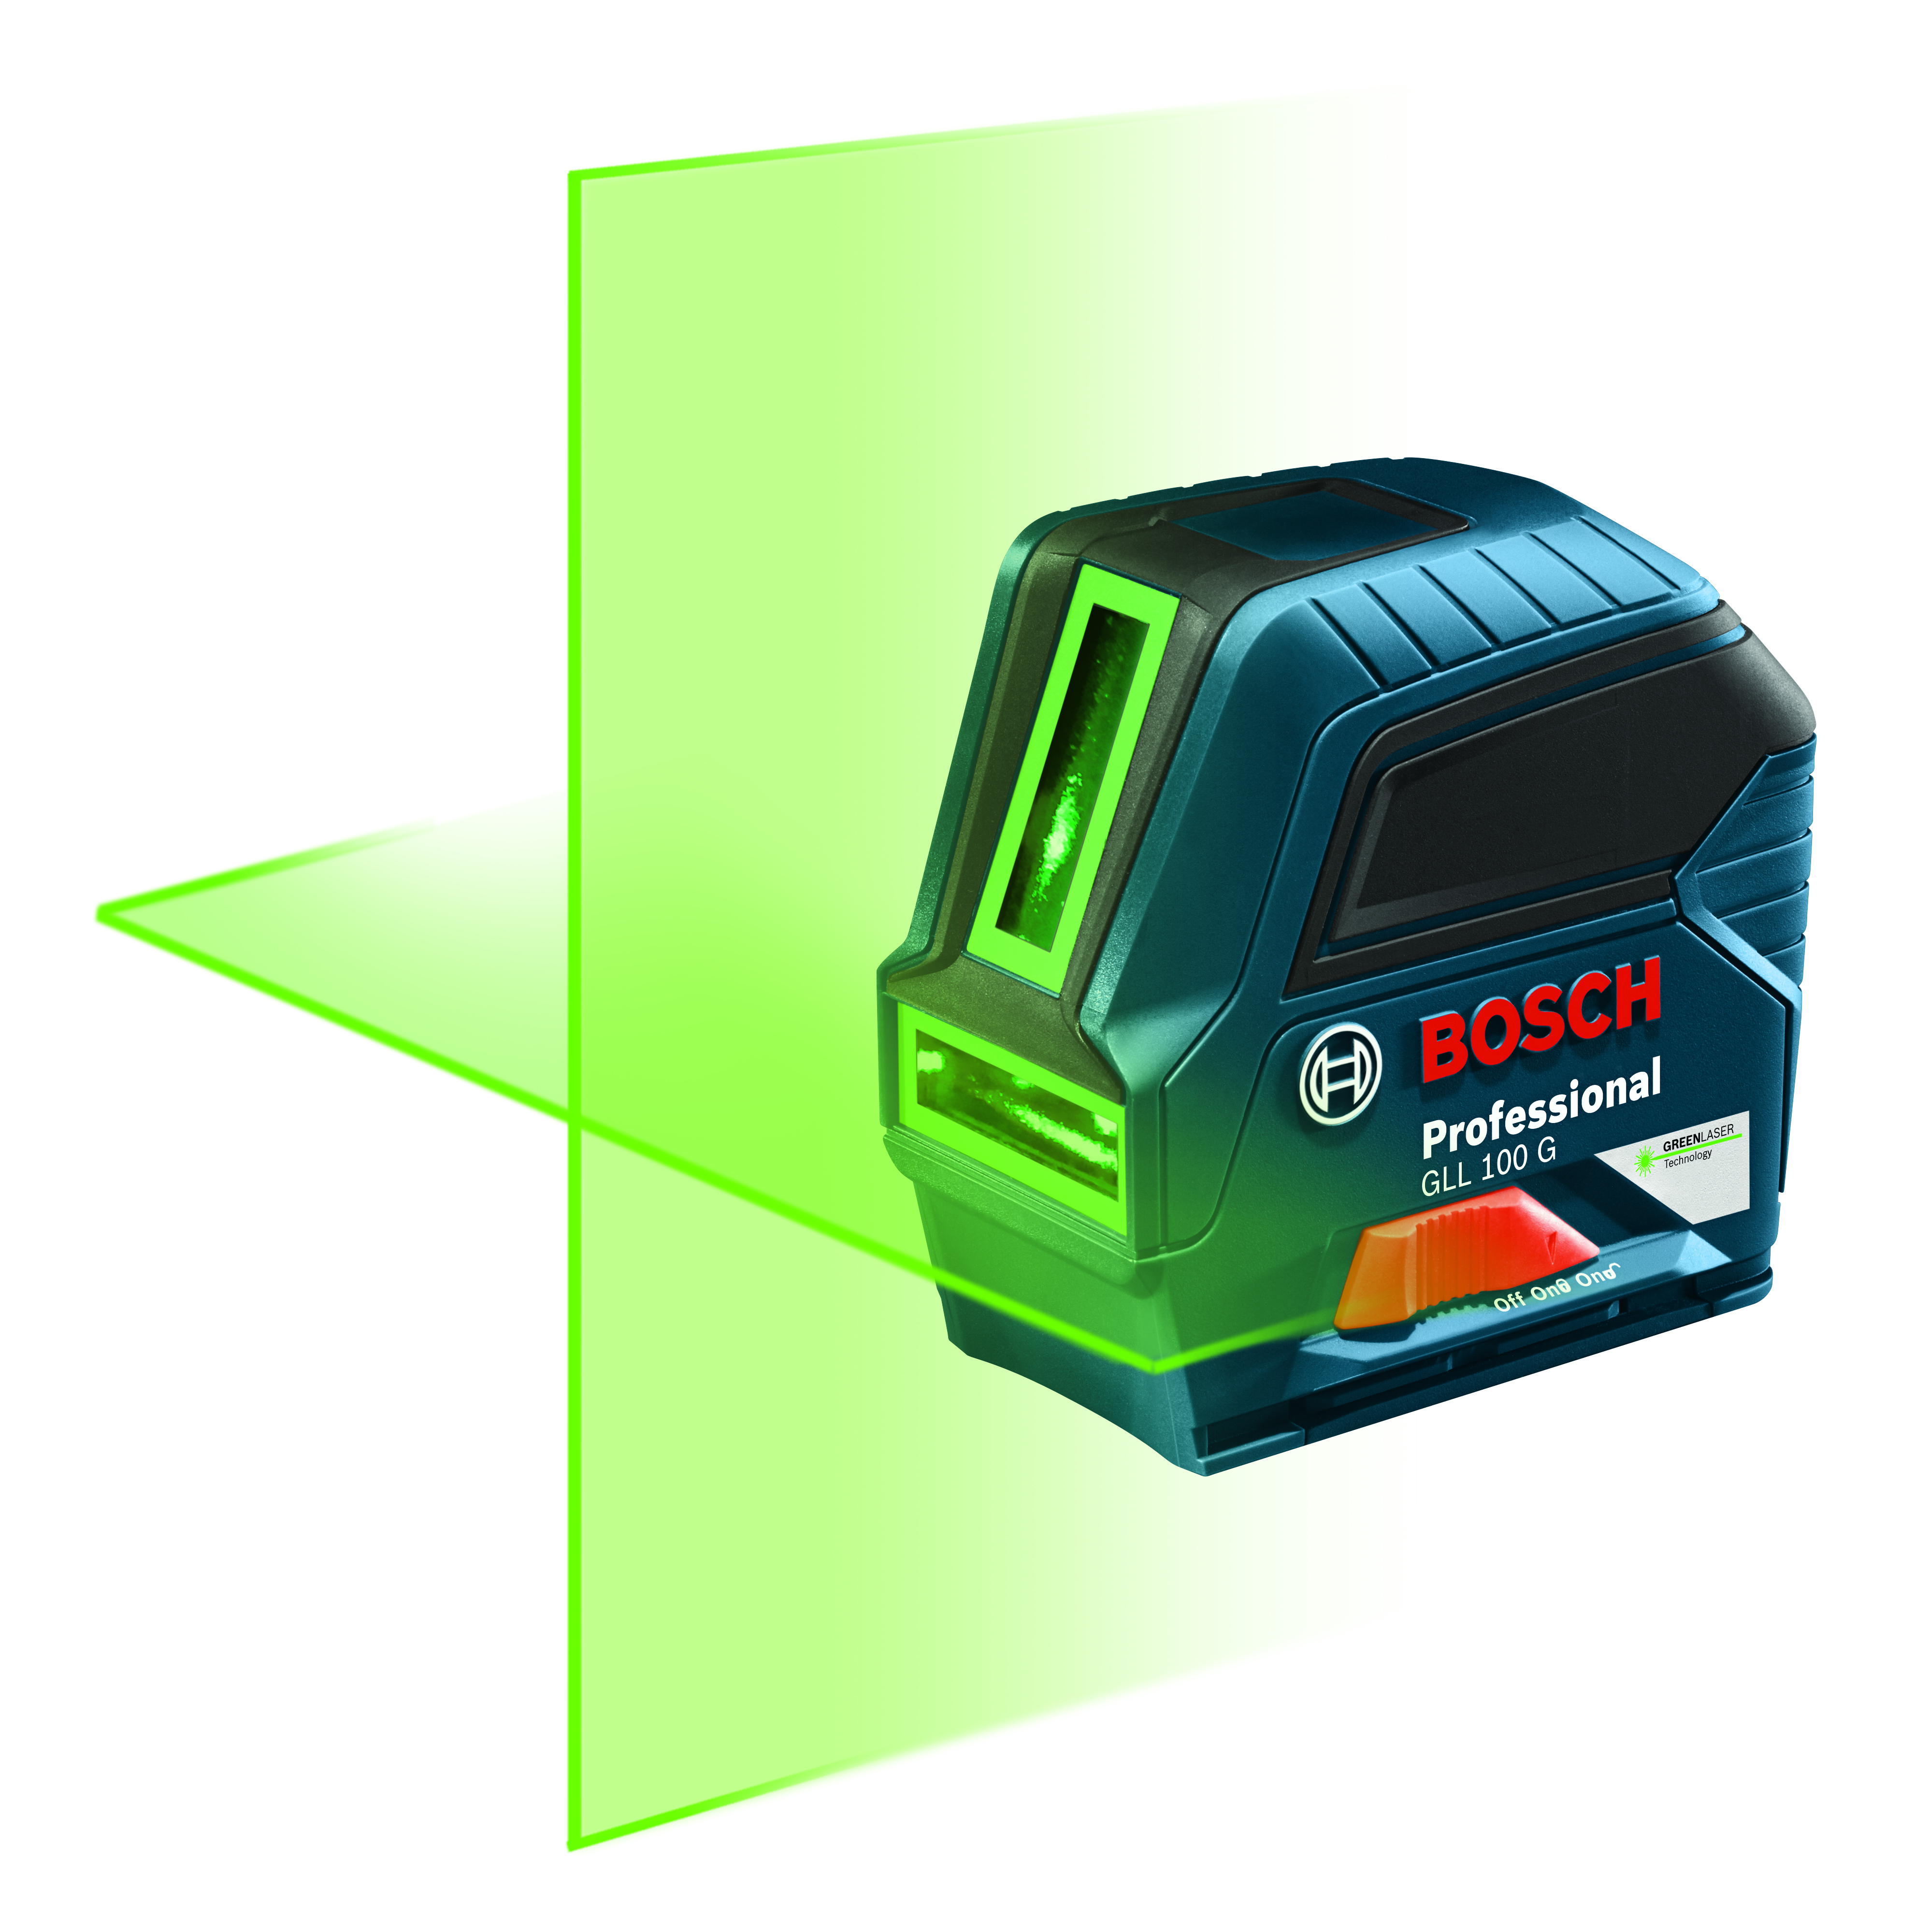 bosch gll 55 red and gll 100 g green beam lasers contractor supply magazine. Black Bedroom Furniture Sets. Home Design Ideas